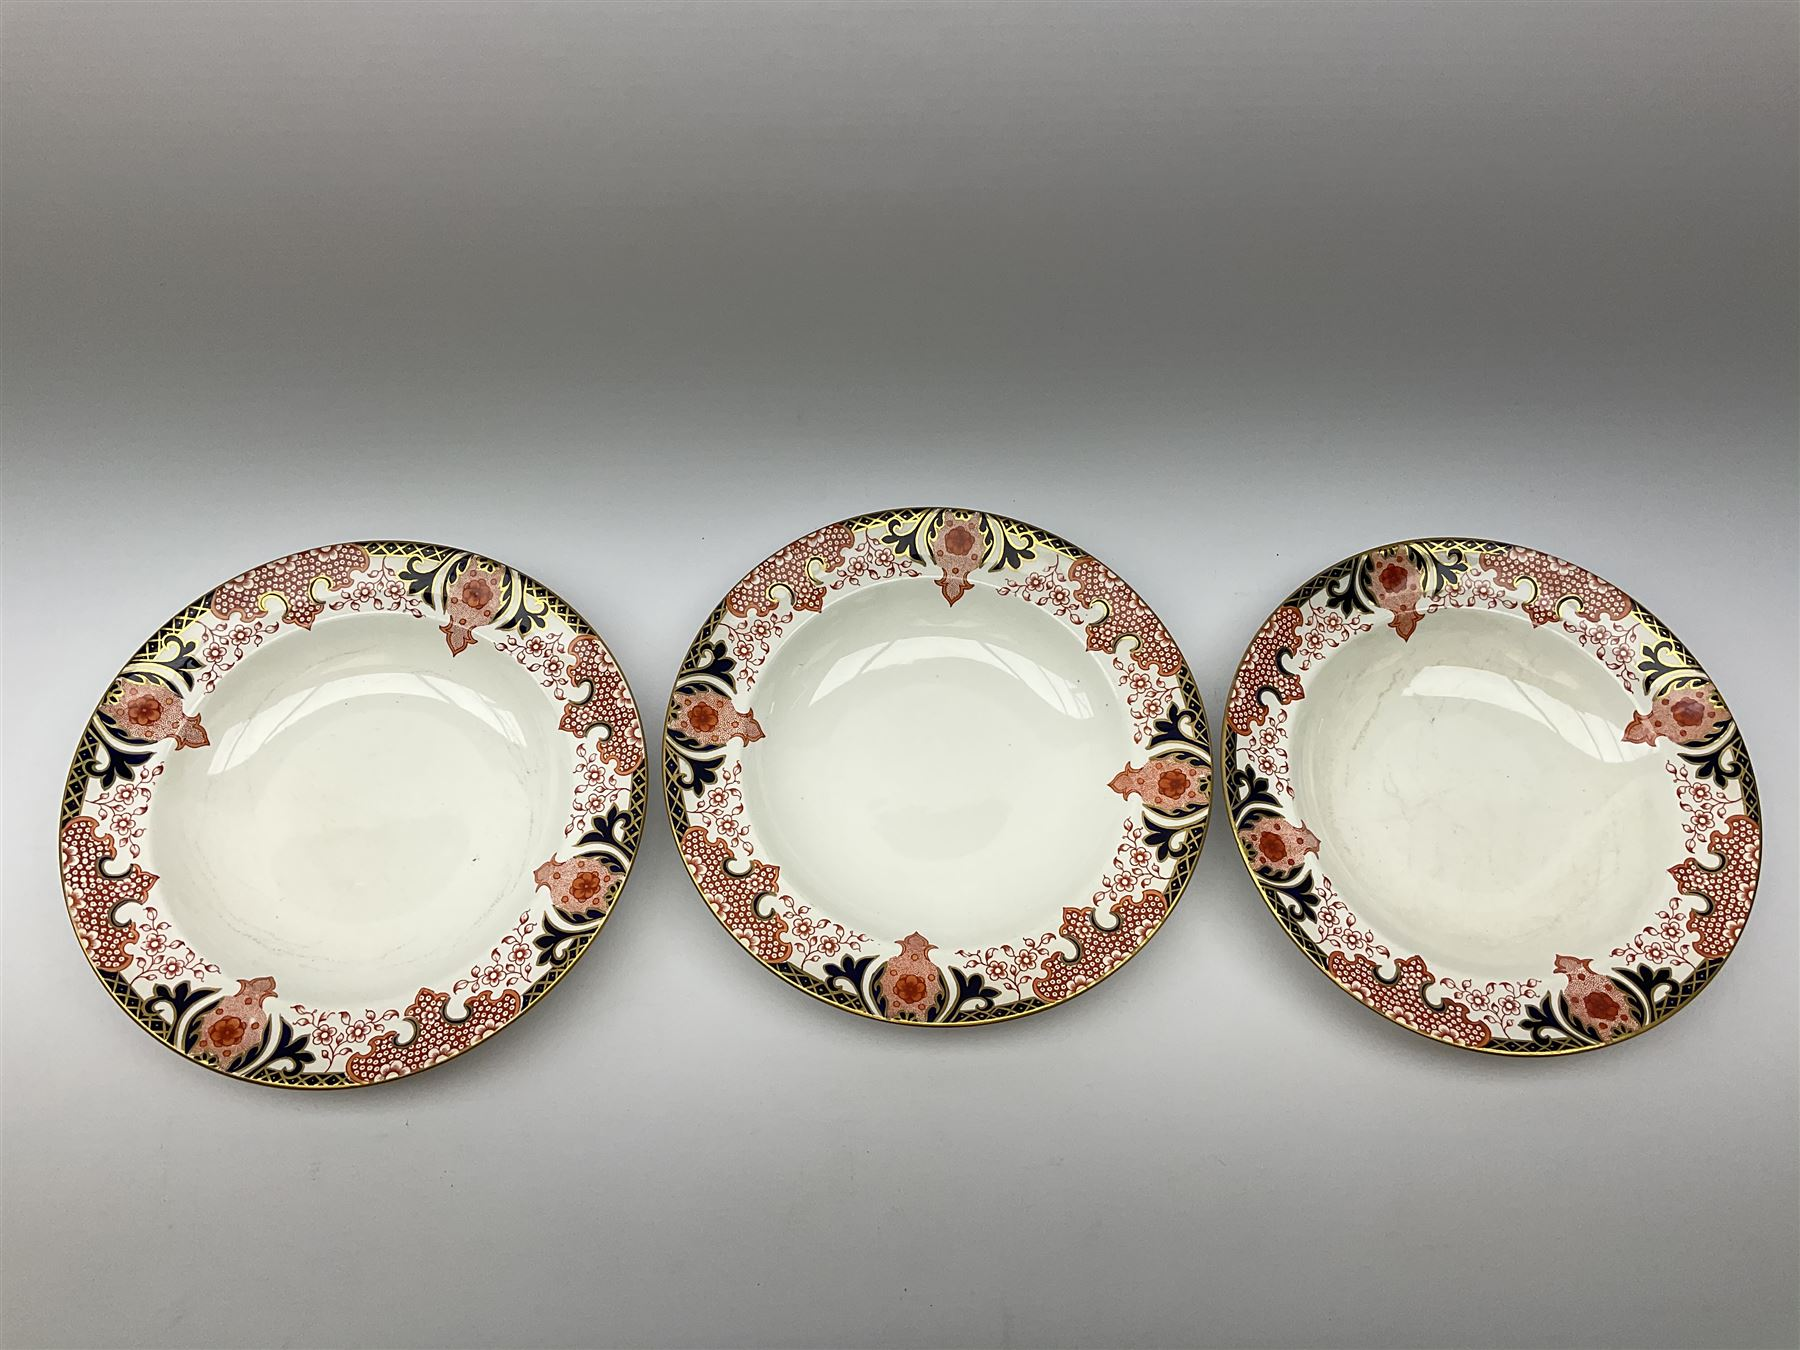 A Royal Crown Derby Imari 1128 pattern plate - Image 6 of 7